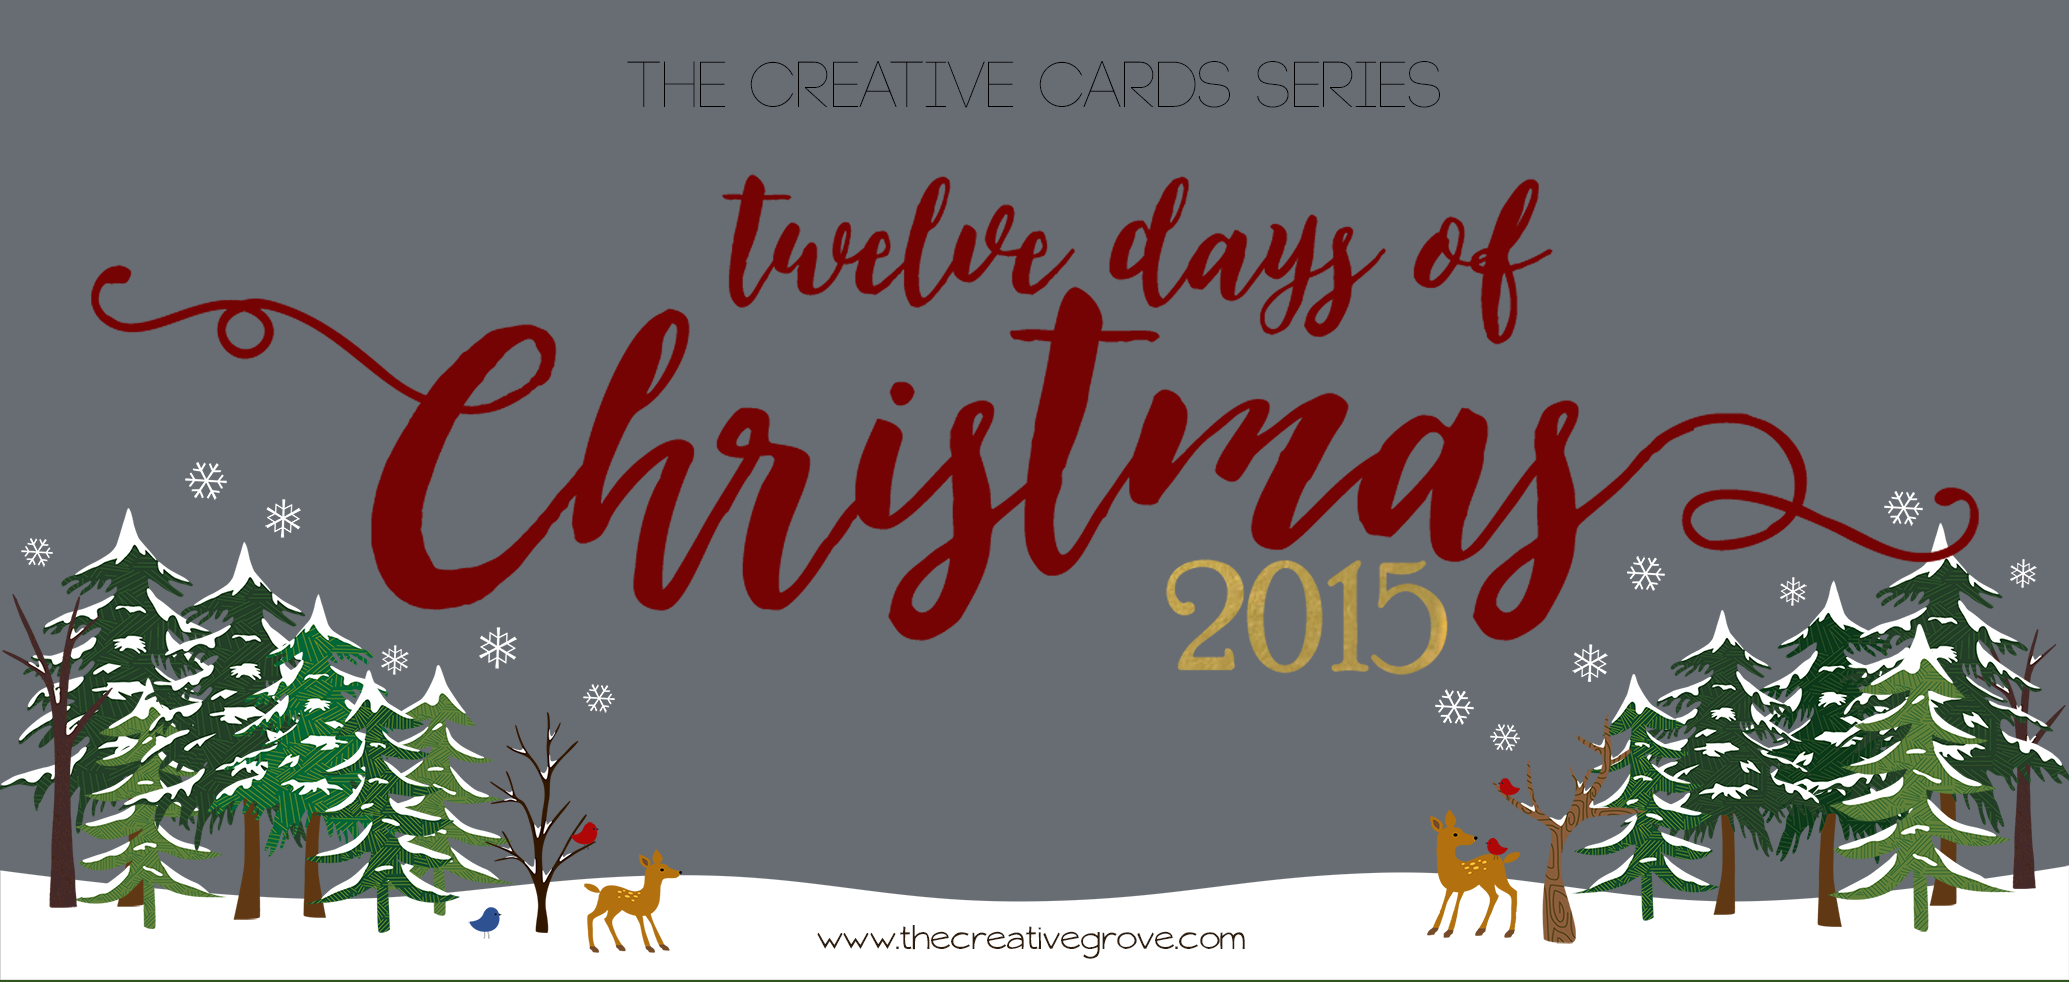 12 Days of Christmas 2015 Button